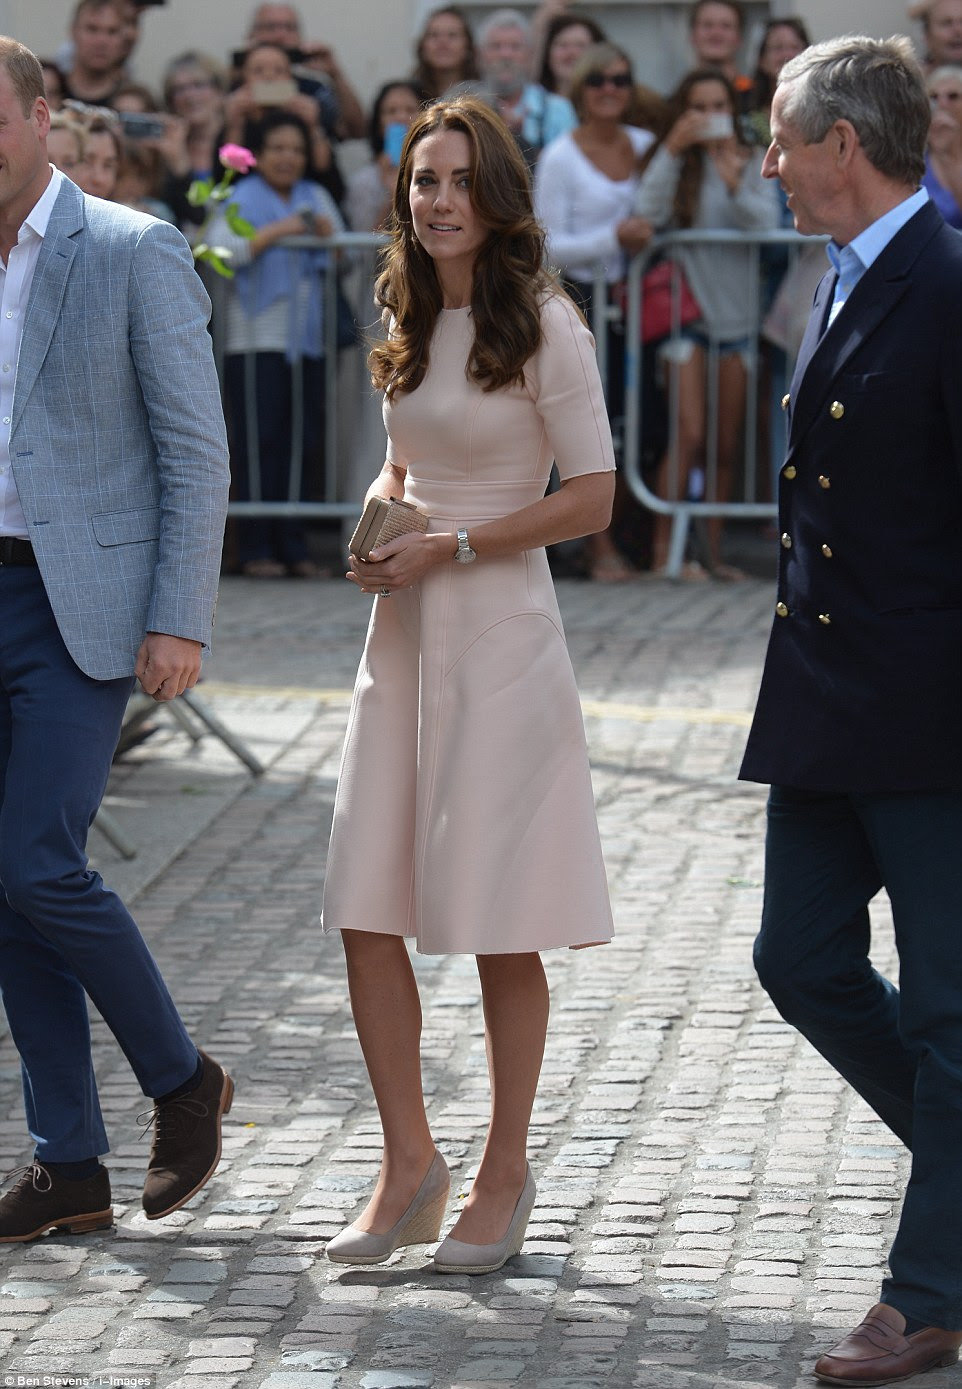 The Duchess looked the picture of elegance in a pale pink dress by Lela Rose as she arrived in Cornwall with William this morning